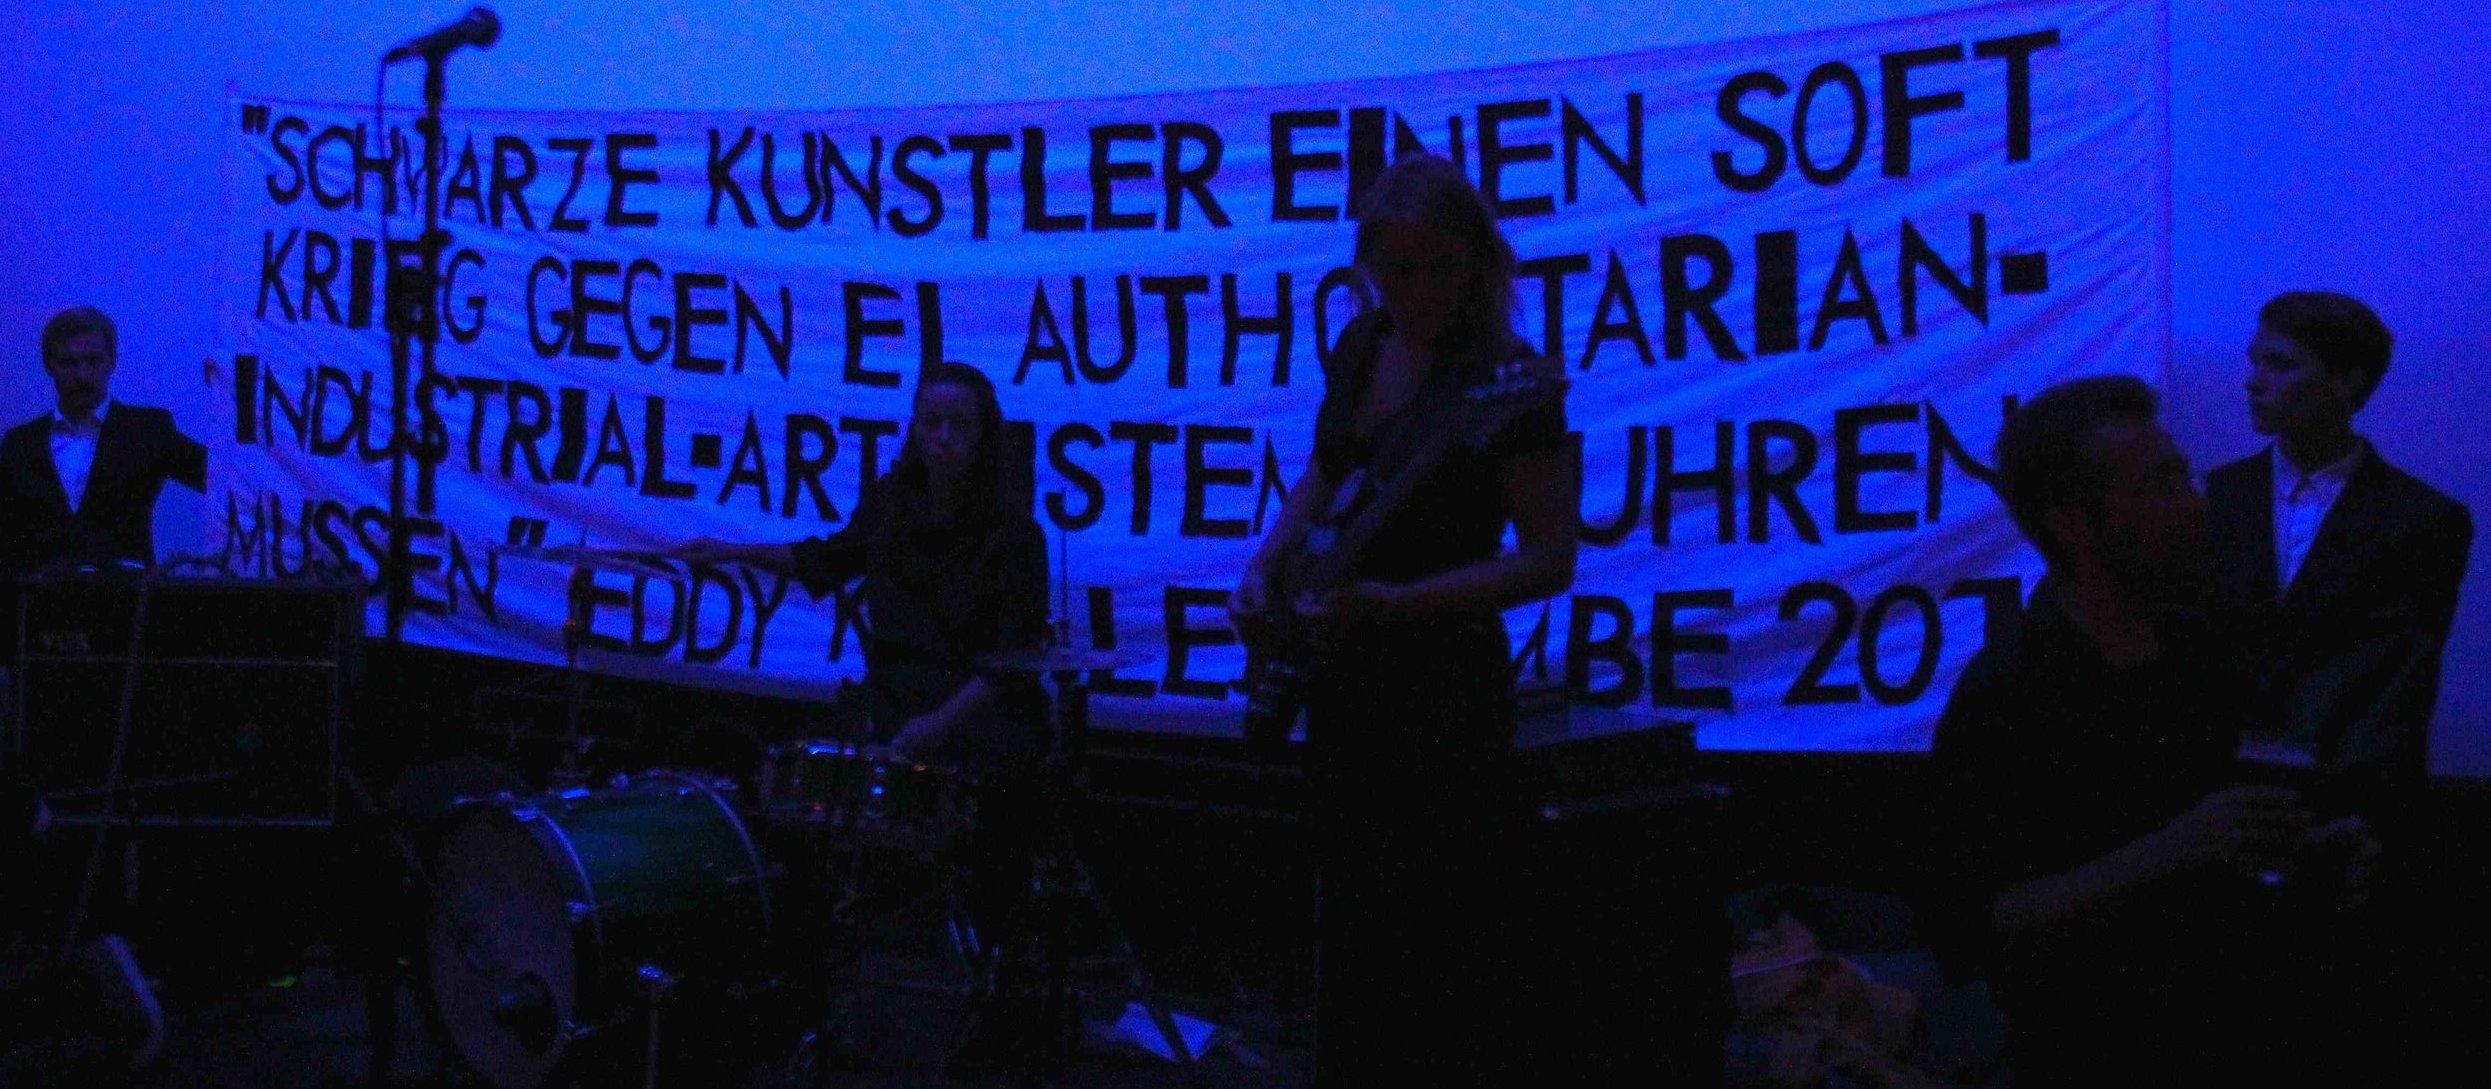 "Our Literal Speed presents ""Our Literal Speed,"" dimensions variable, materials: all-female band playing the main riff from ""Kashmir"" again and again, male models, LGBTQ rights ""propaganda"" banner rendered in art world lingua franca, two-person lecture, 29 August 2013, Bergen Kunsthall, Bergen, Norway (detail)"